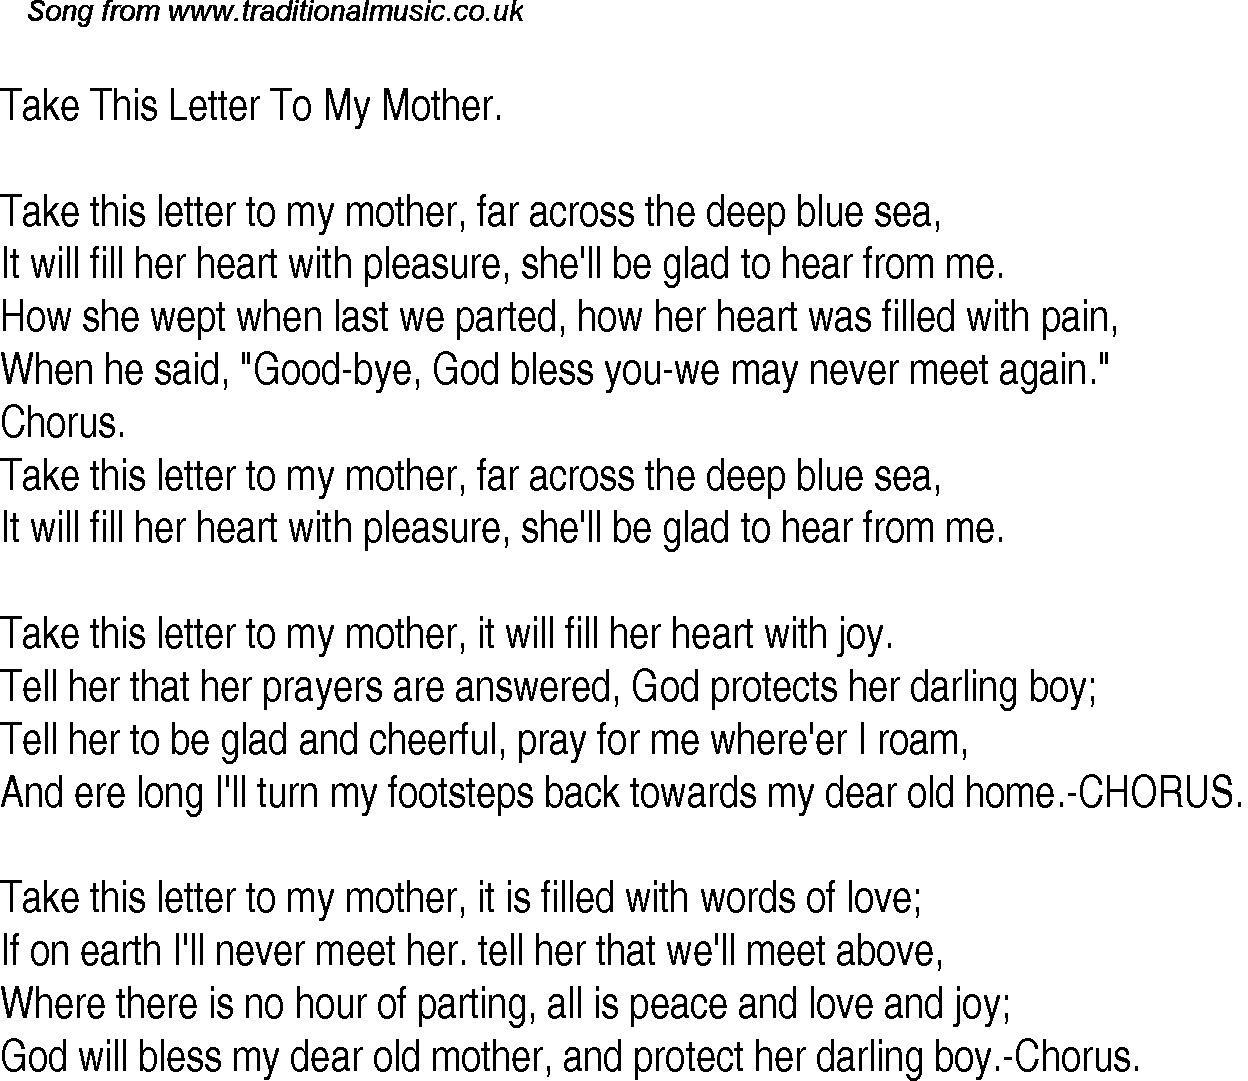 Old Time Song Lyrics for 28 Take This Letter To My Mother